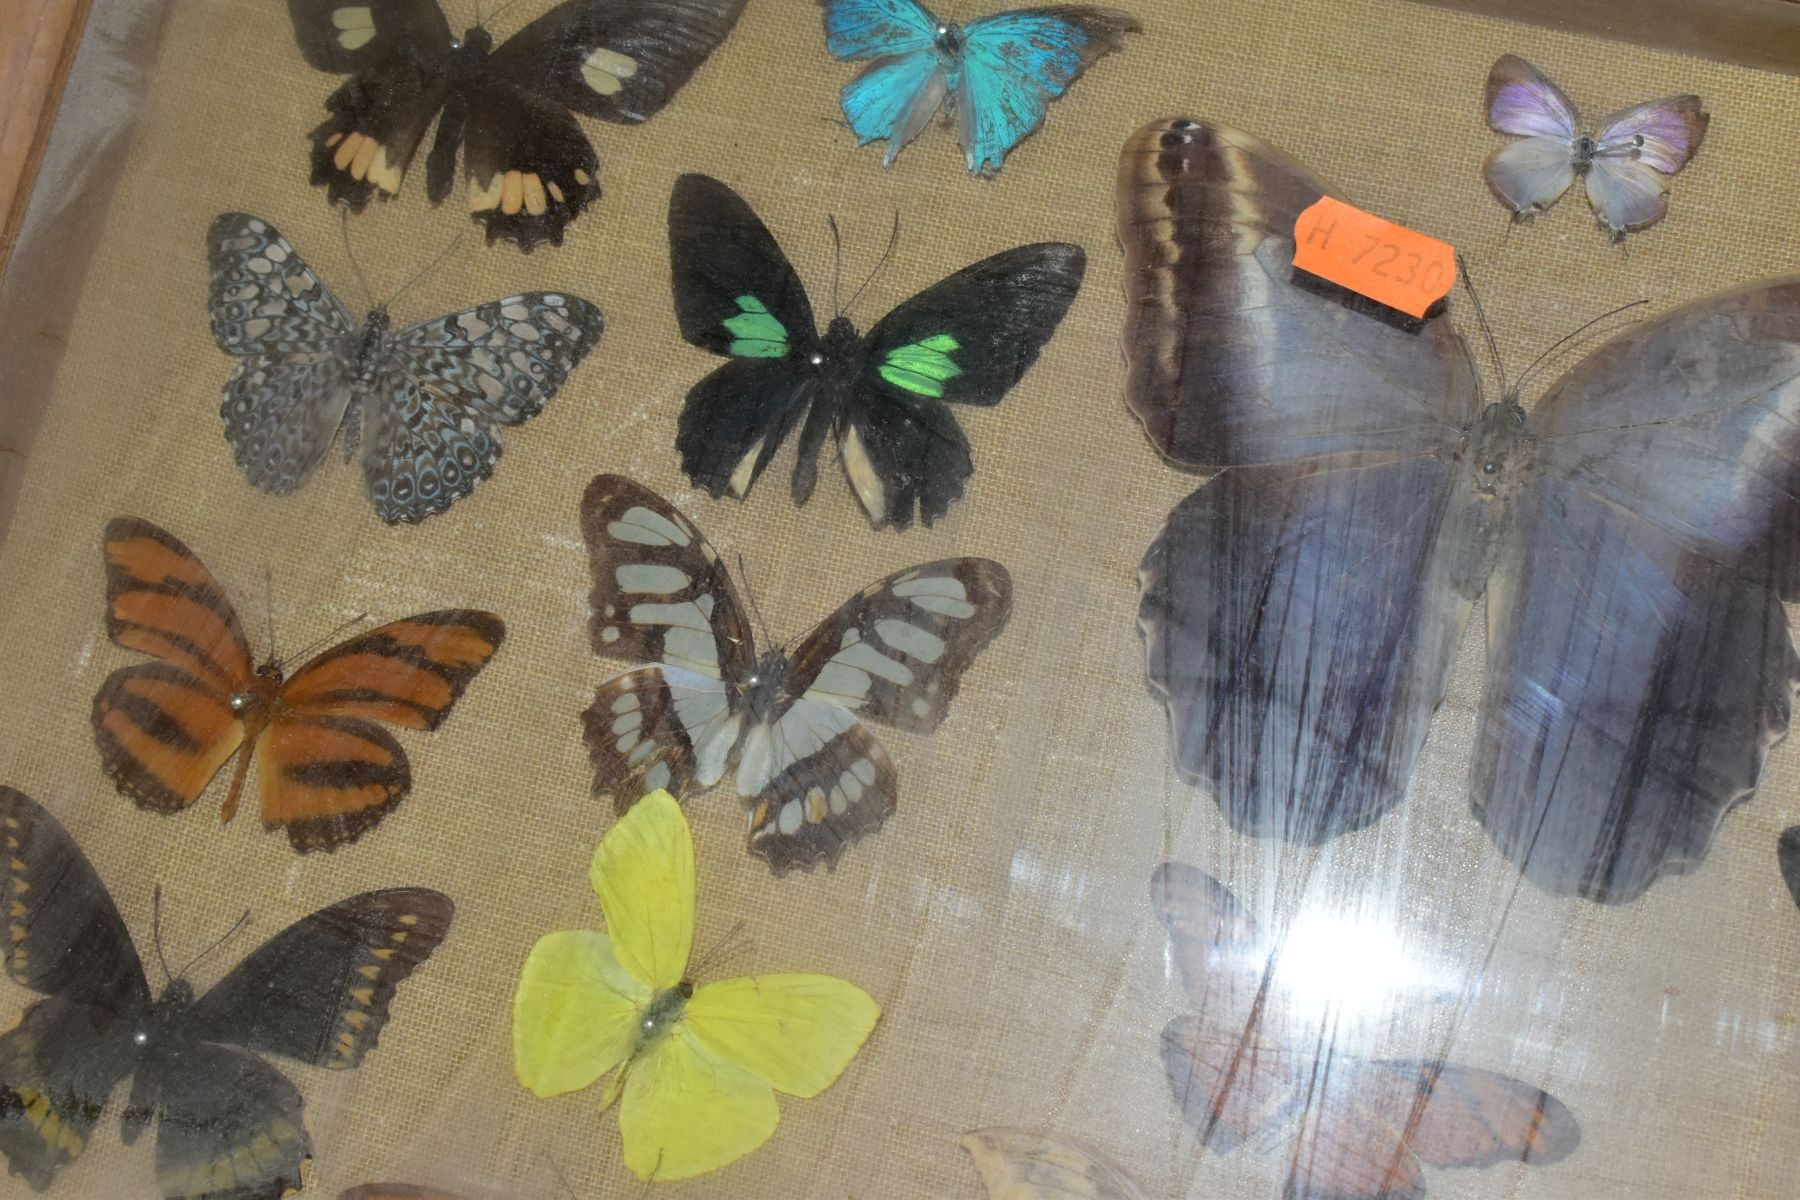 THREE DISPLAY CASES CONTAINING BUTTERFLIES AND MOTH SPECIMENS, together with four circular framed - Image 9 of 10